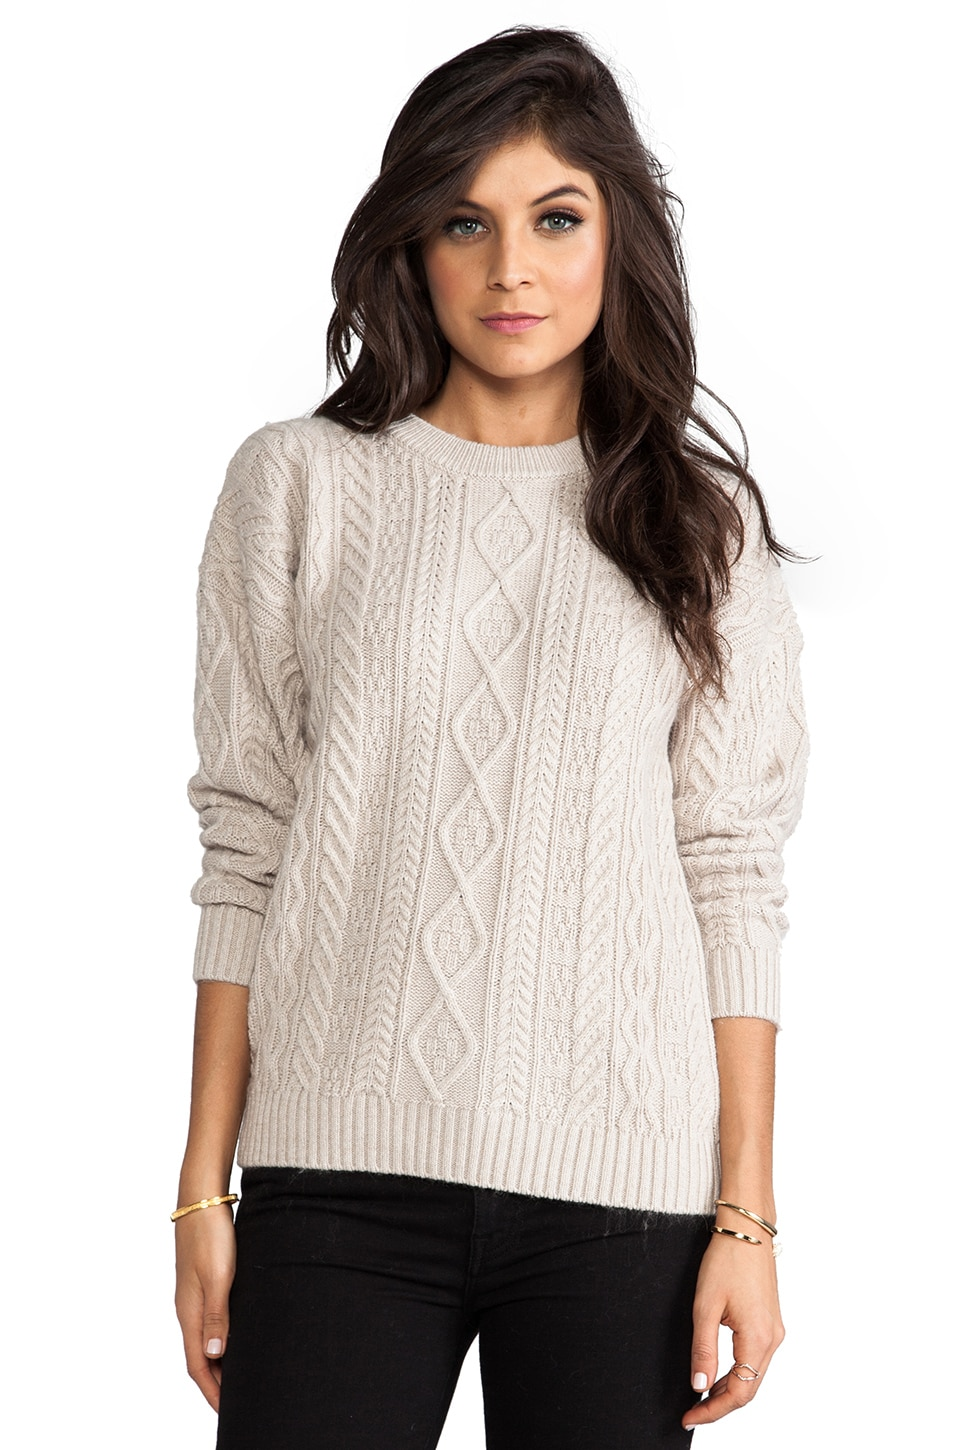 Central Park West Caribou Pullover in Oatmeal